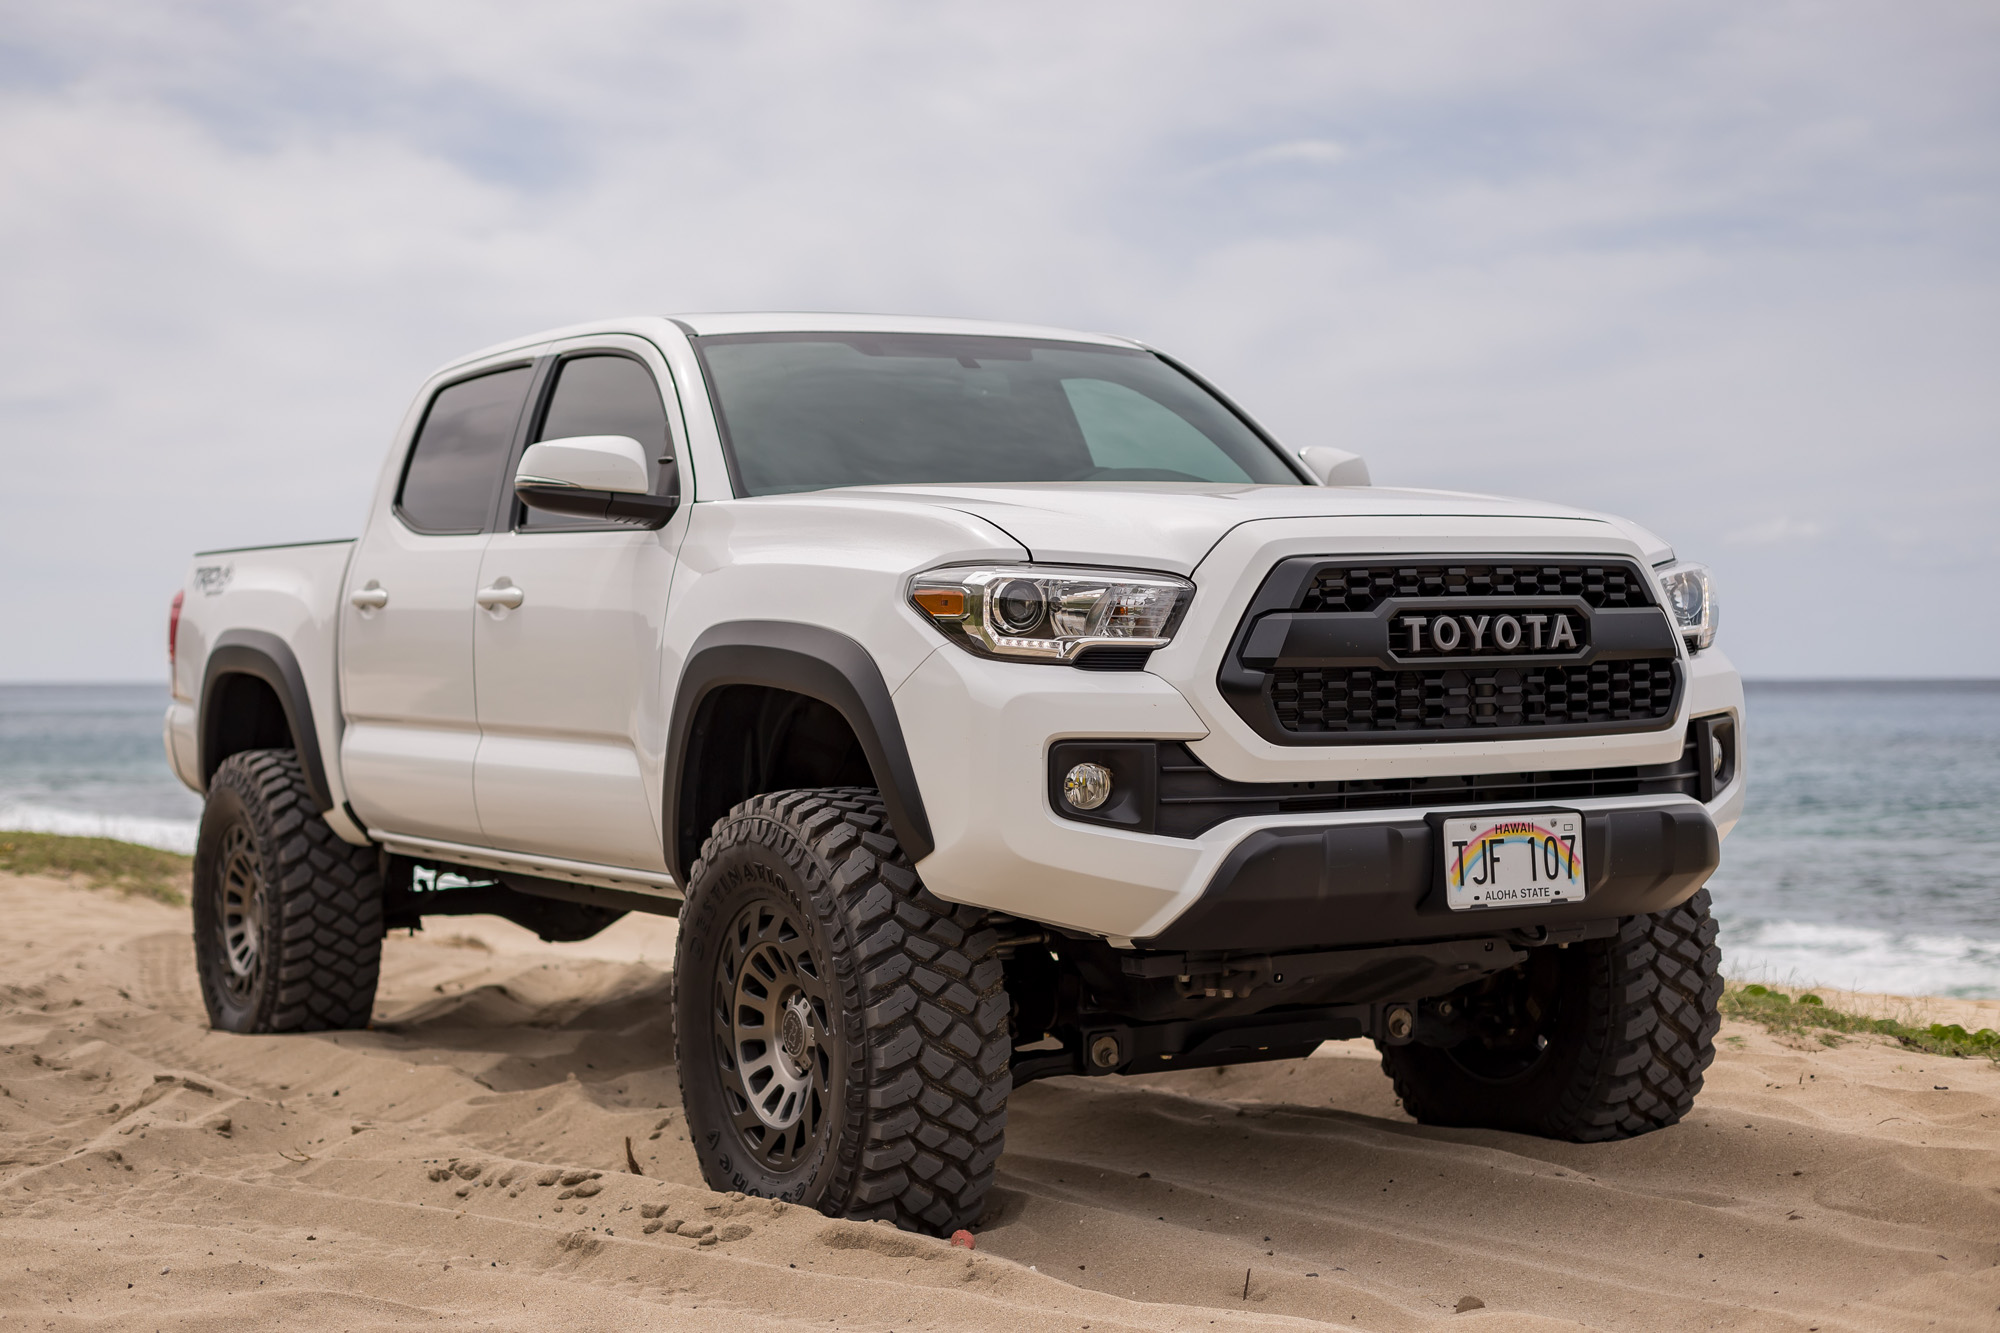 wallpaper toyota image tacoma of htm rims picture wheels